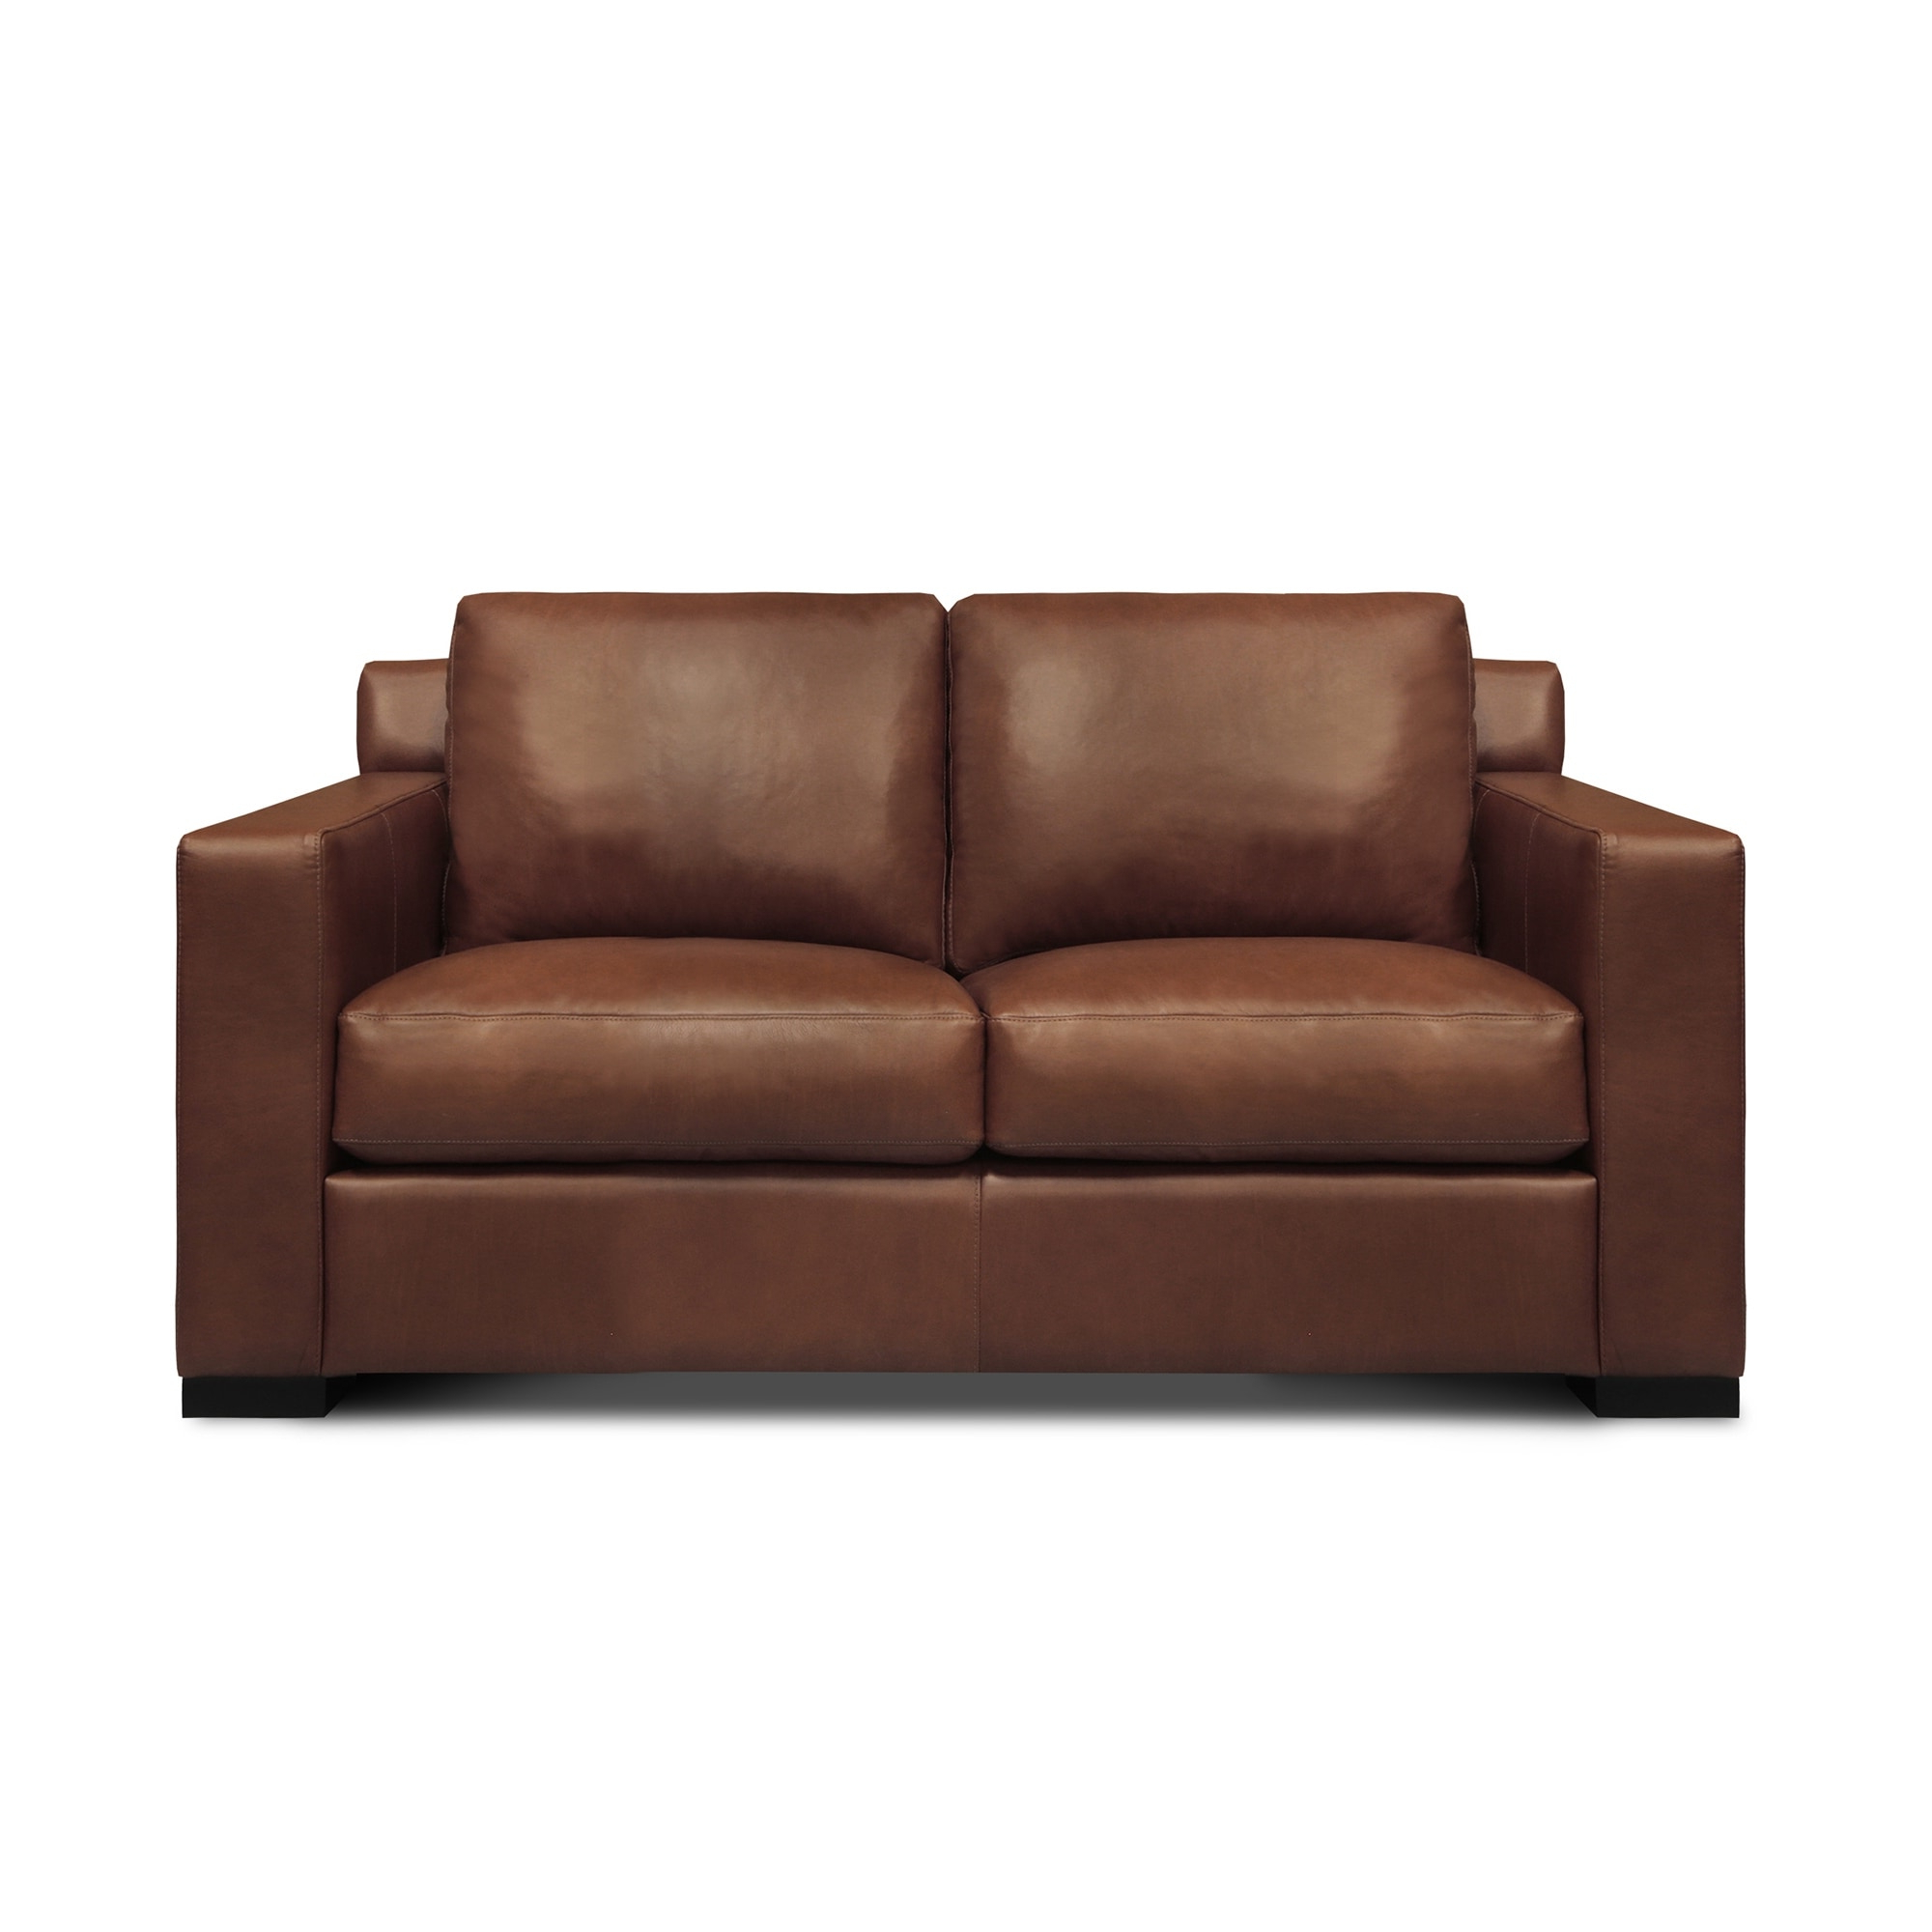 [%100 Top Grain Italian Leather Sofa Chaise Lucca American Within Latest Matilda 100% Top Grain Leather Chaise Sectional Sofas|matilda 100% Top Grain Leather Chaise Sectional Sofas Within Well Liked 100 Top Grain Italian Leather Sofa Chaise Lucca American|best And Newest Matilda 100% Top Grain Leather Chaise Sectional Sofas With 100 Top Grain Italian Leather Sofa Chaise Lucca American|most Up To Date 100 Top Grain Italian Leather Sofa Chaise Lucca American Within Matilda 100% Top Grain Leather Chaise Sectional Sofas%] (View 1 of 20)